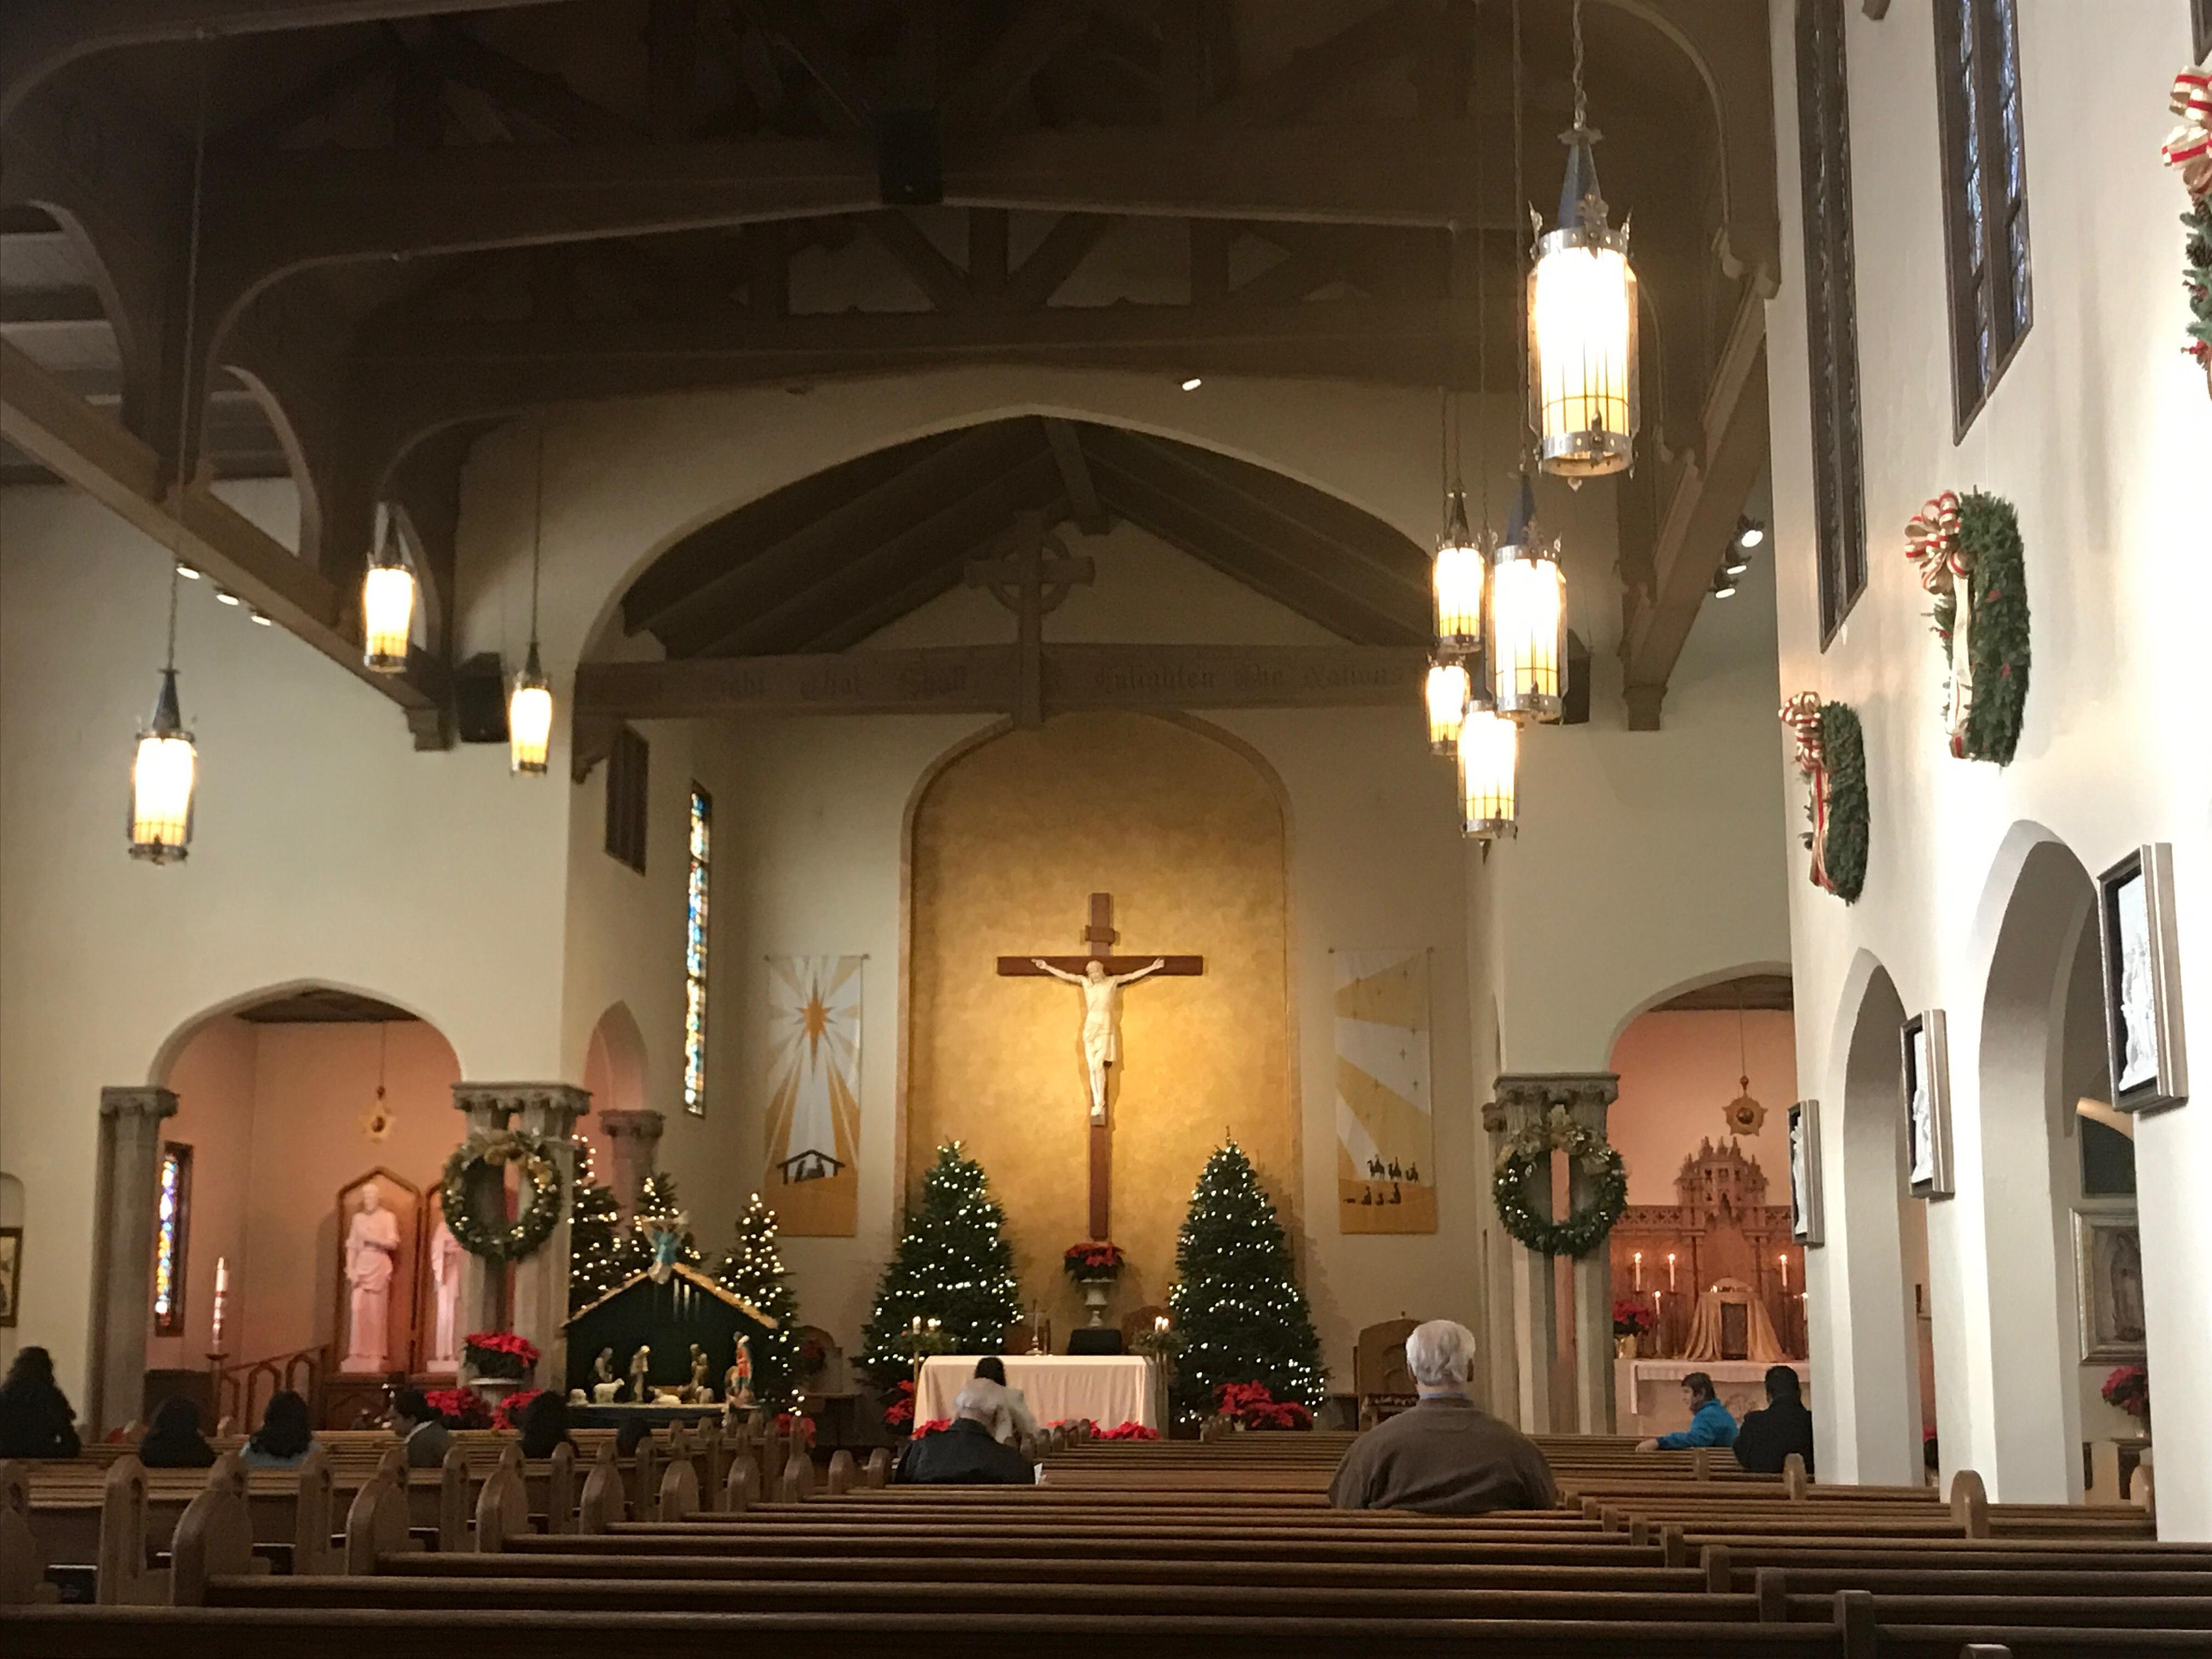 People all over gathered at St. Mary's Catholic Church to celebrate the meaning of Christmas (SBG).